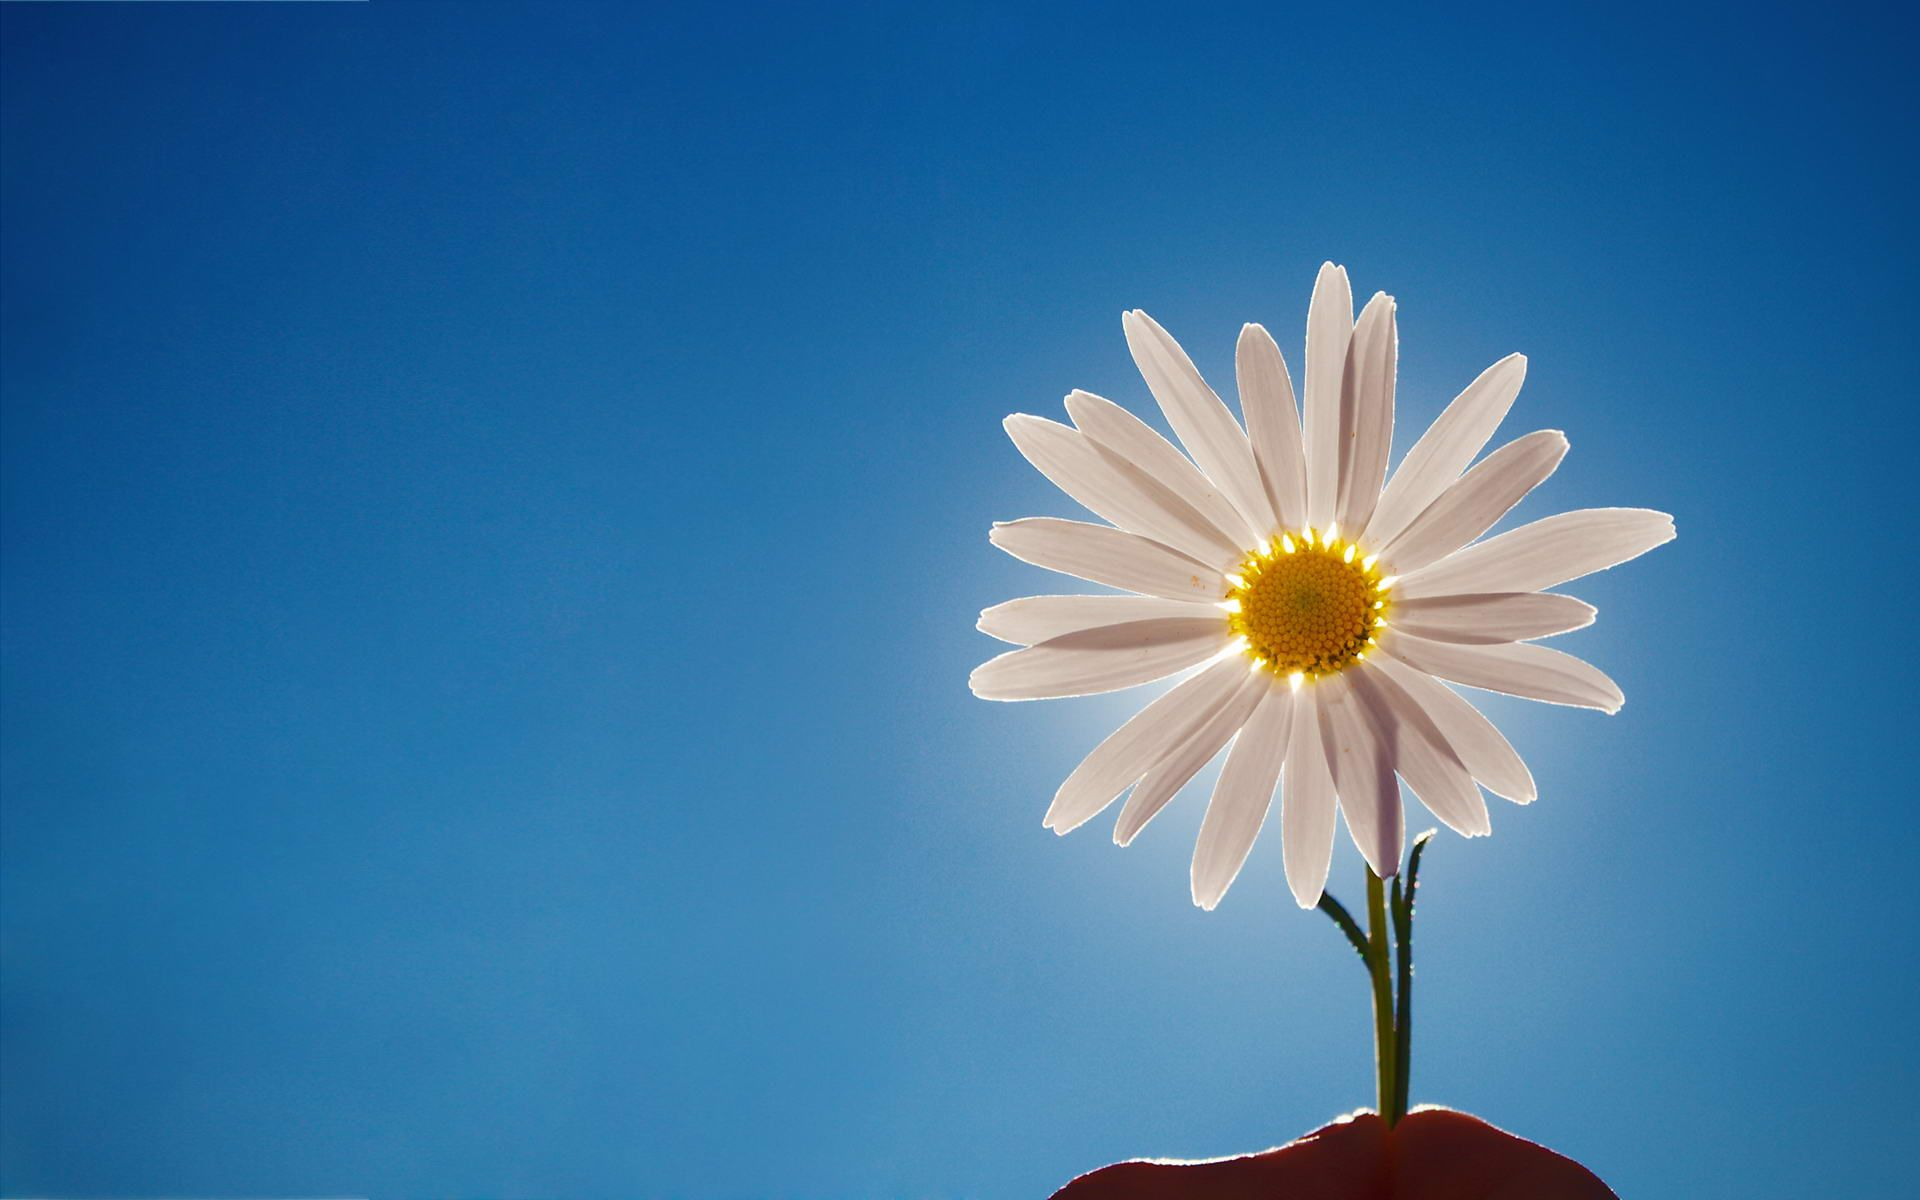 Image Detail for Daisy, web, background, wallpapers